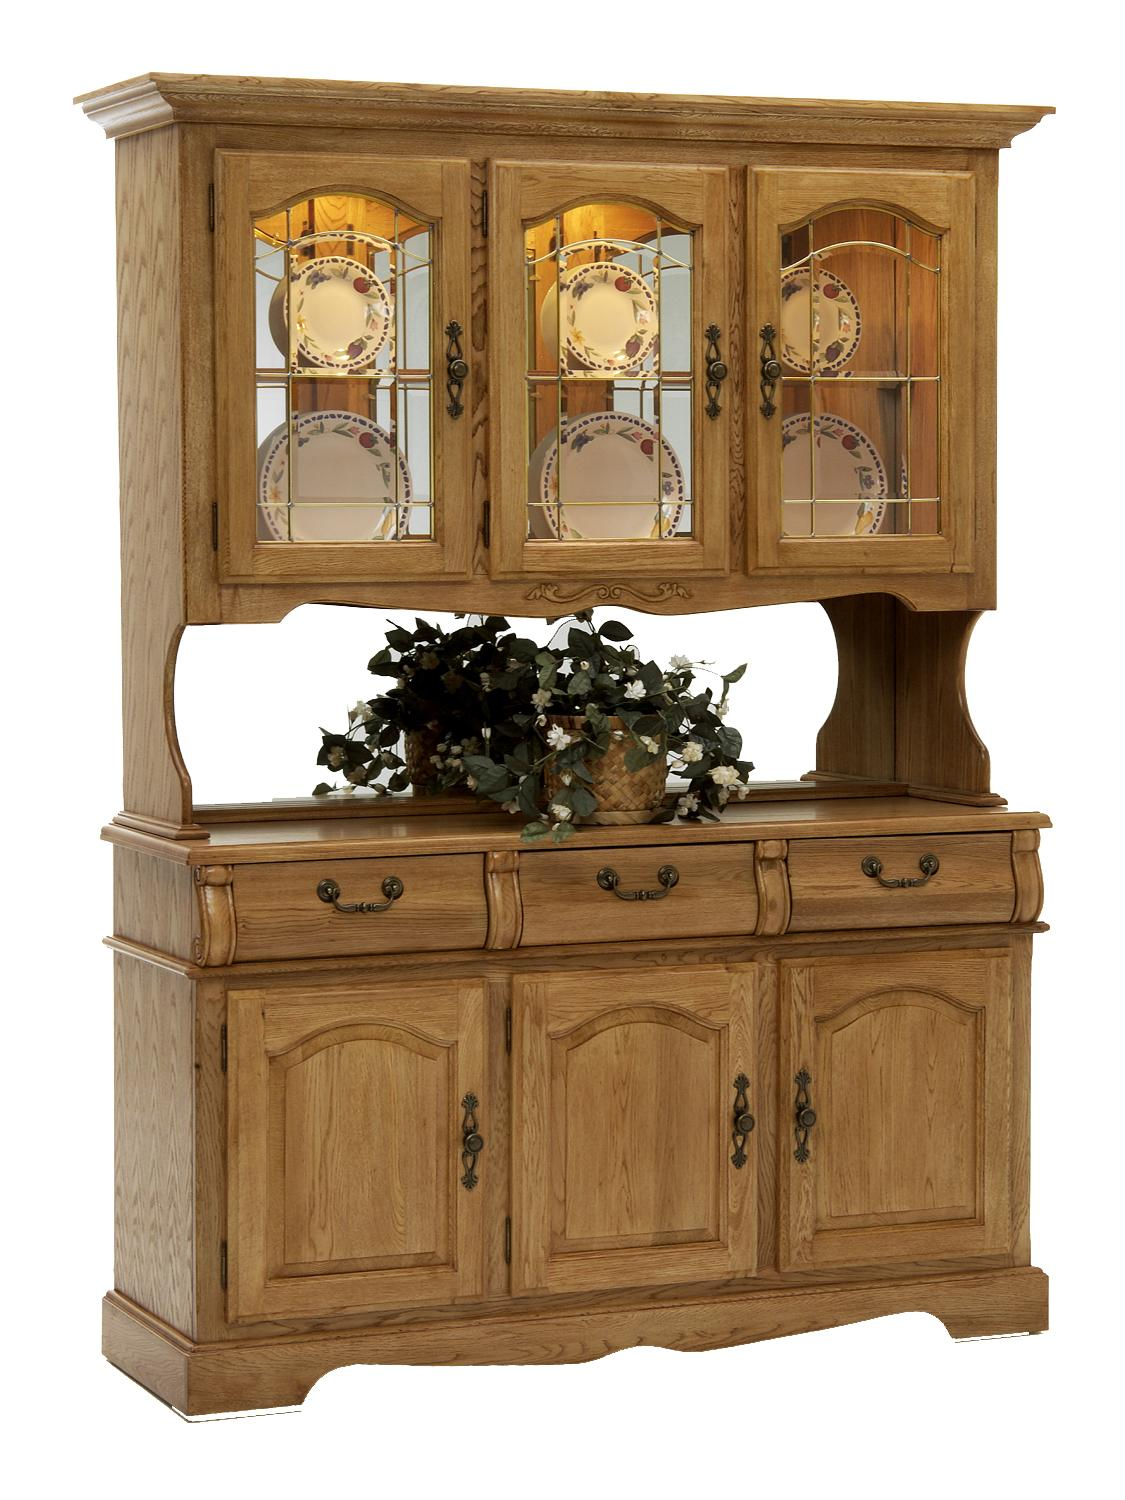 cabinet width estates china trim products estateschina item hutch fairmont height grand royal threshold furniture designs